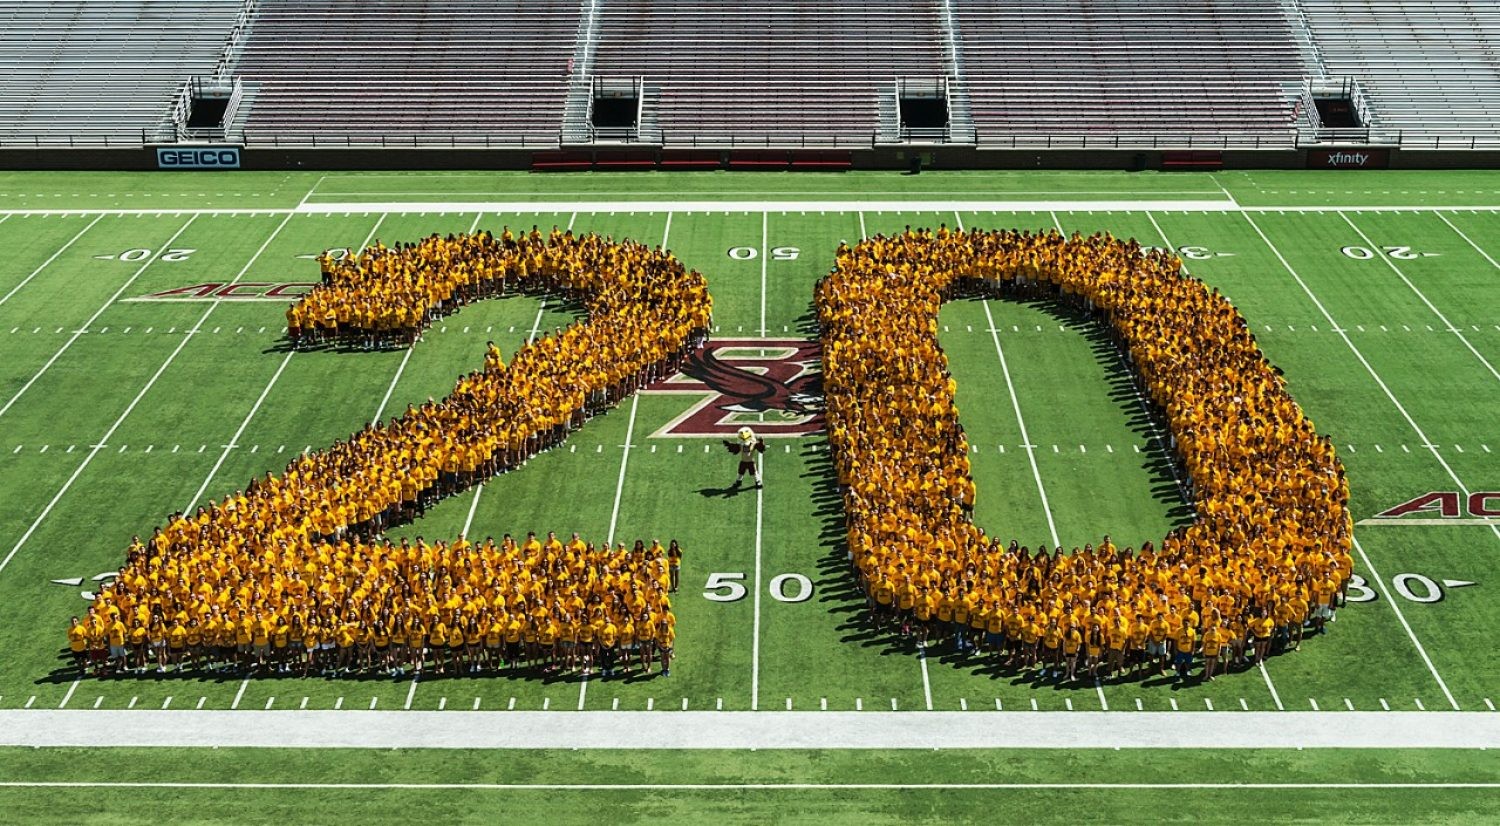 BC Class of 2020 first official photo in Alumni Stadium